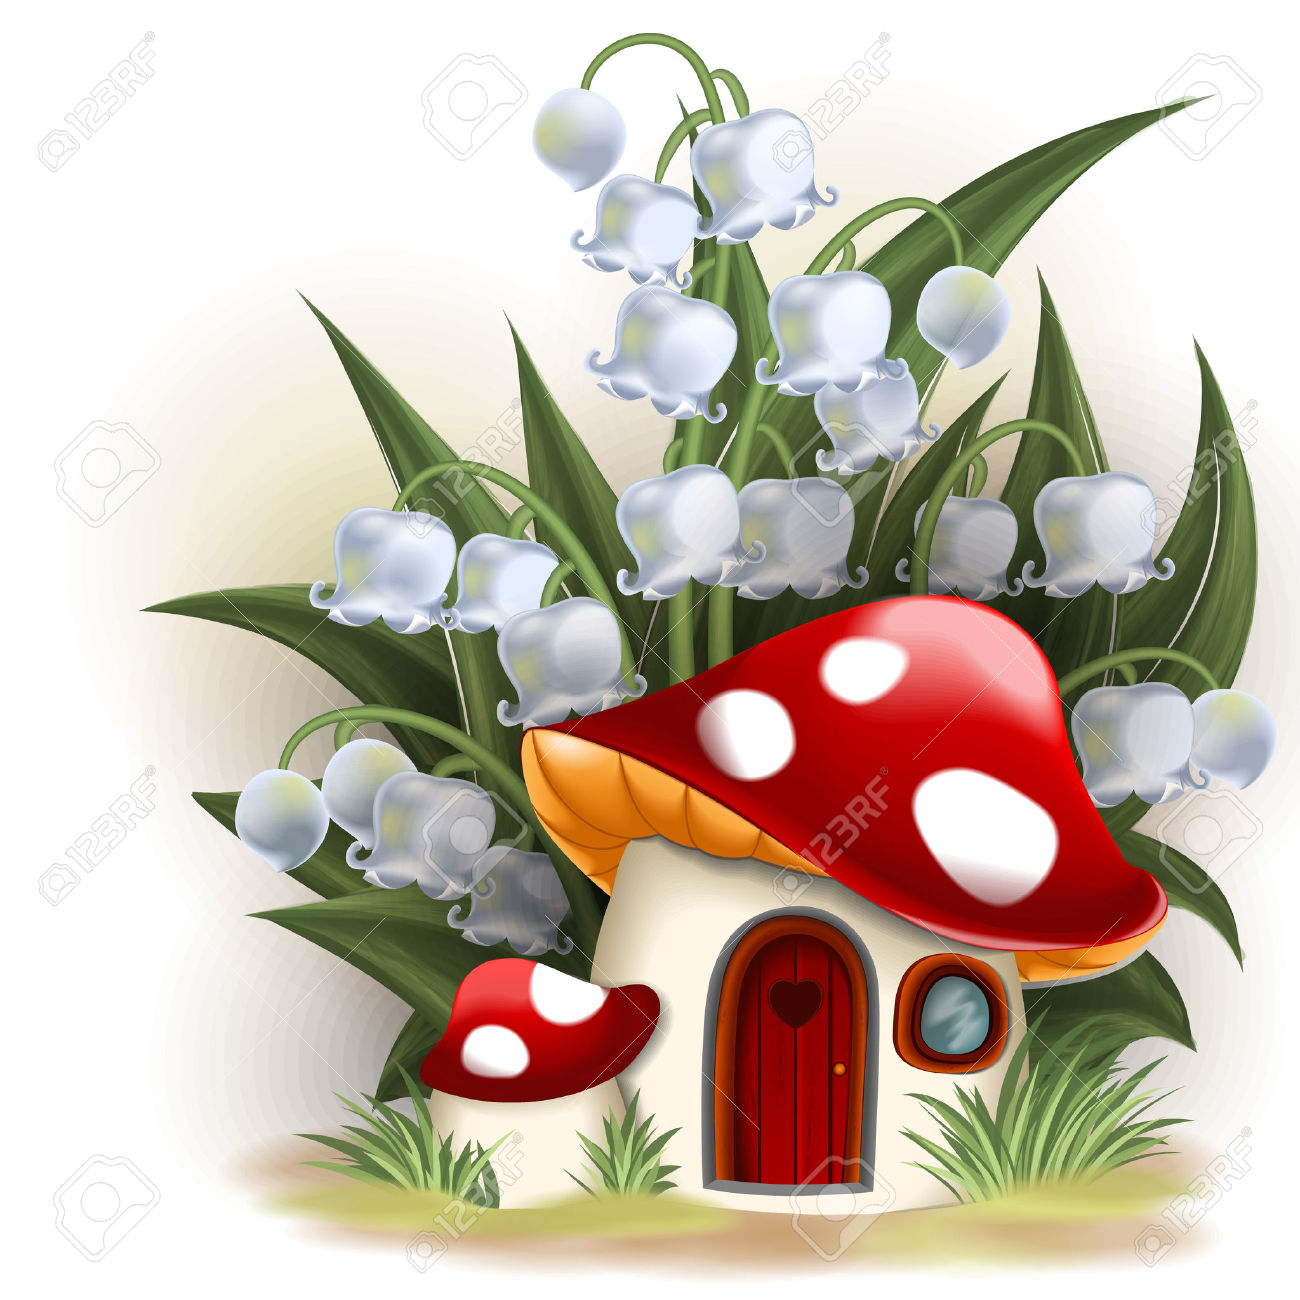 Lily Of The Valley clipart #6, Download drawings